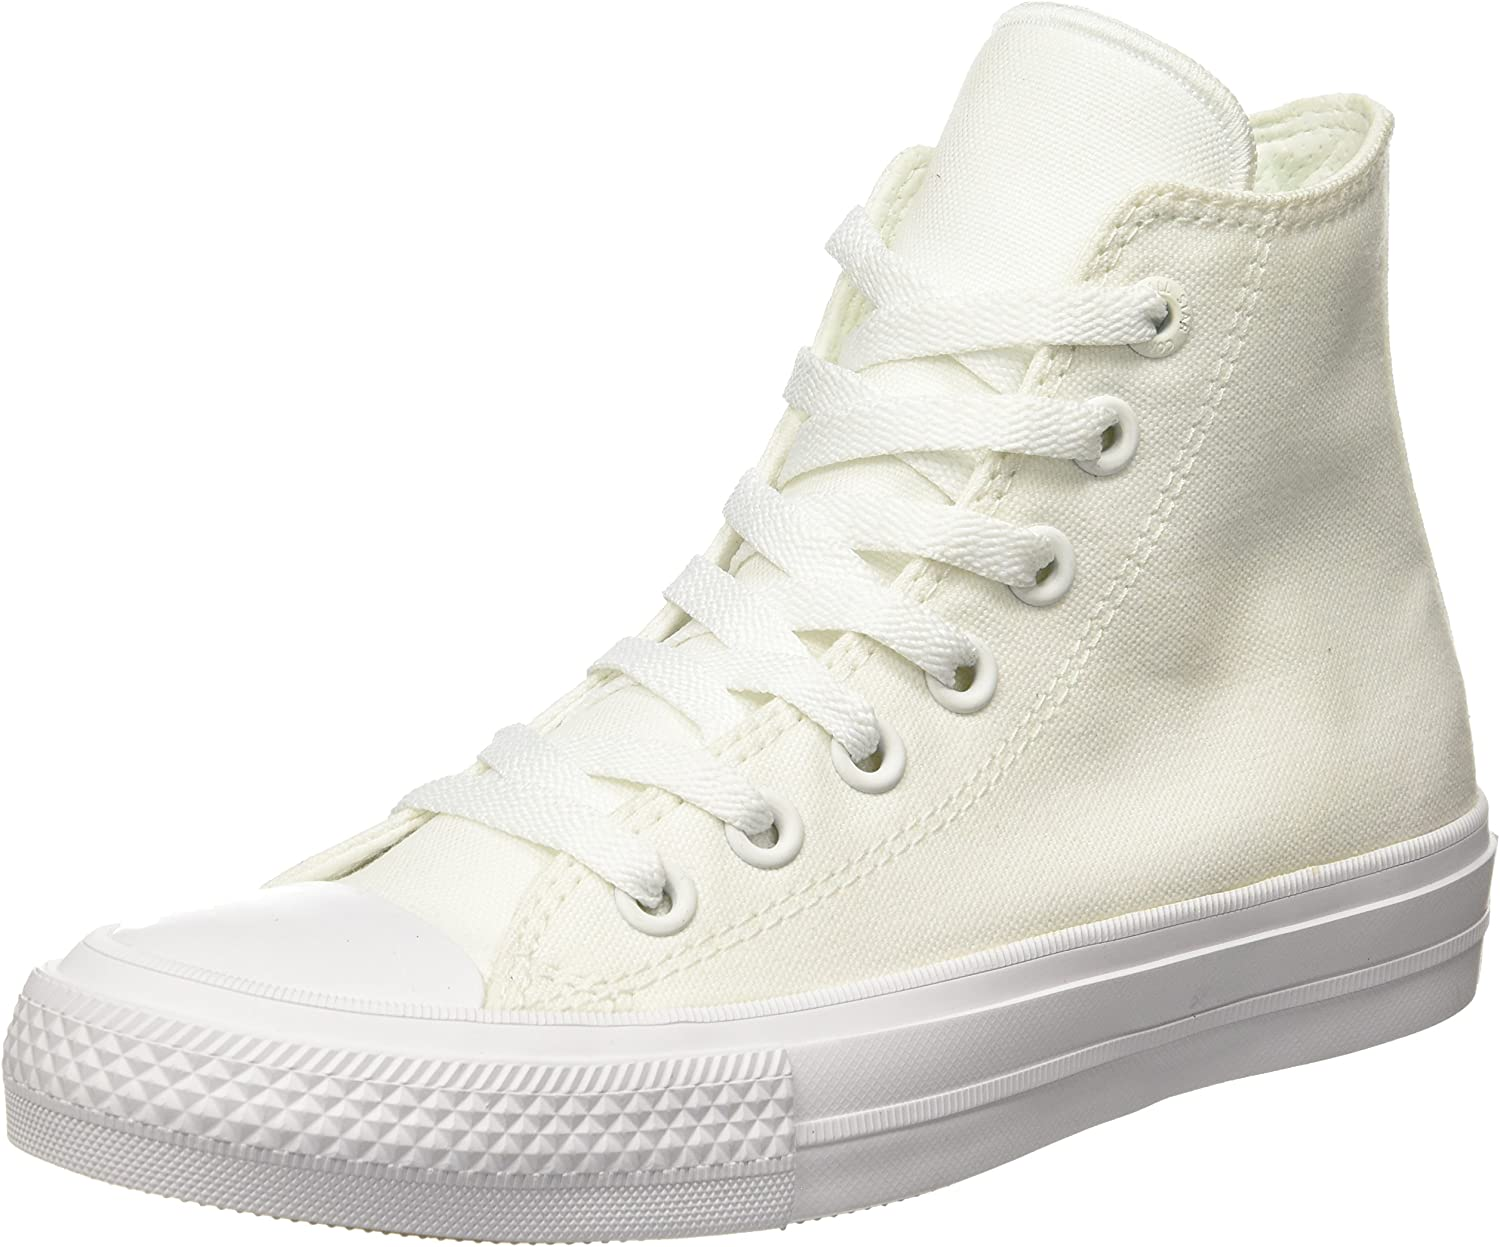 Converse Unisex Chuck Taylor All Star II Hi Basketball shoes White White Navy 12